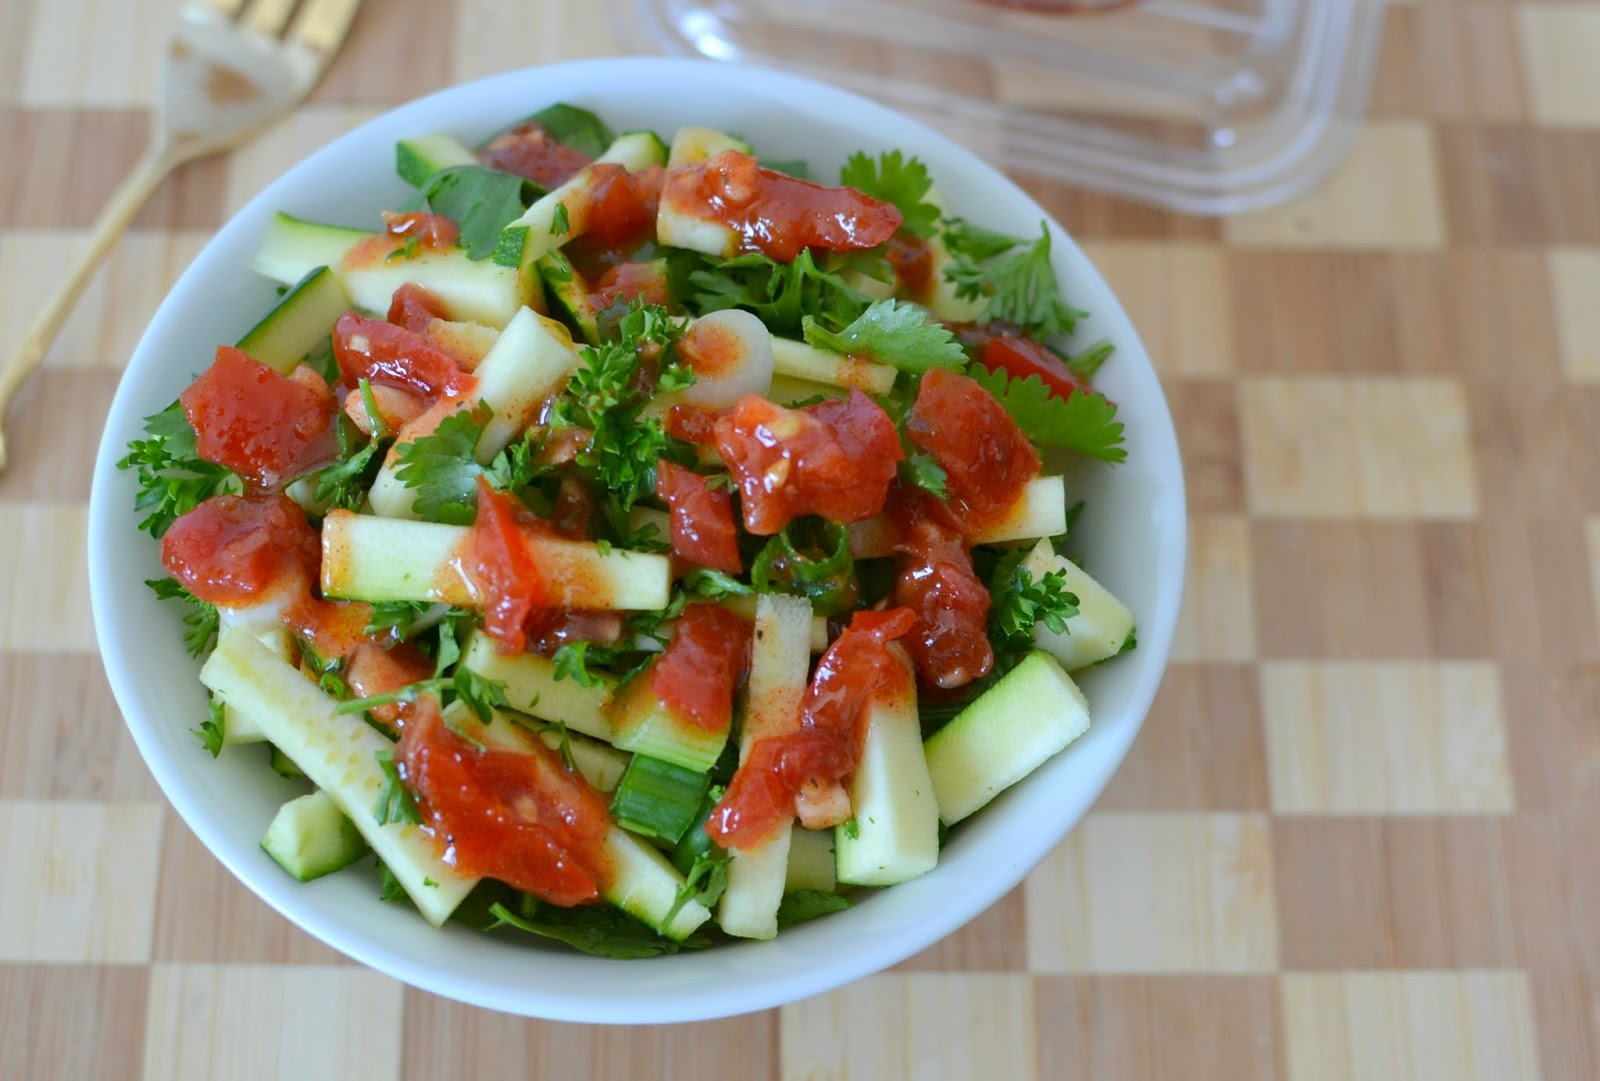 Tomato Garlic Vinaigrette Recipe from Hot Eats and Cool Reads! This summer dressing is perfect with lettuce salads, pasta salads and delicious drizzled over roasted vegetables! Skip the store bought stuff and make this instead!